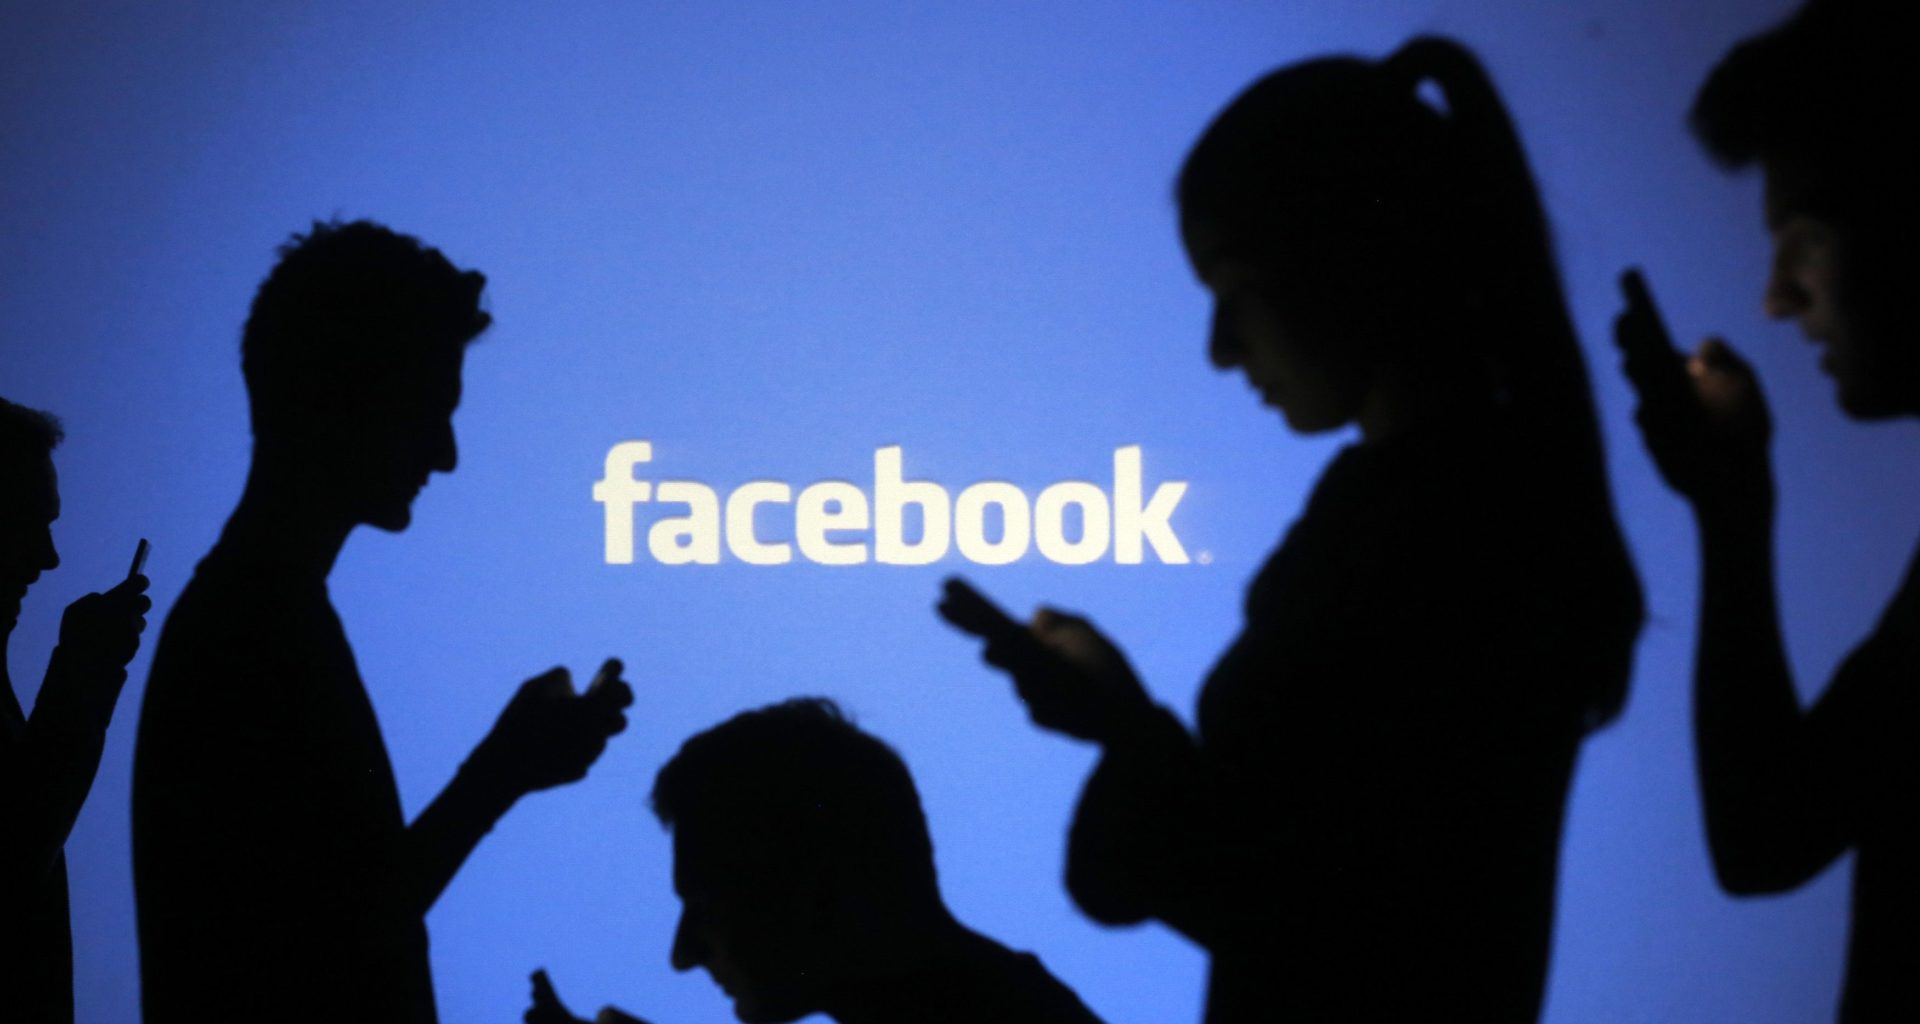 Facebook alleged of 'systemic' racial bias in hiring and promotions